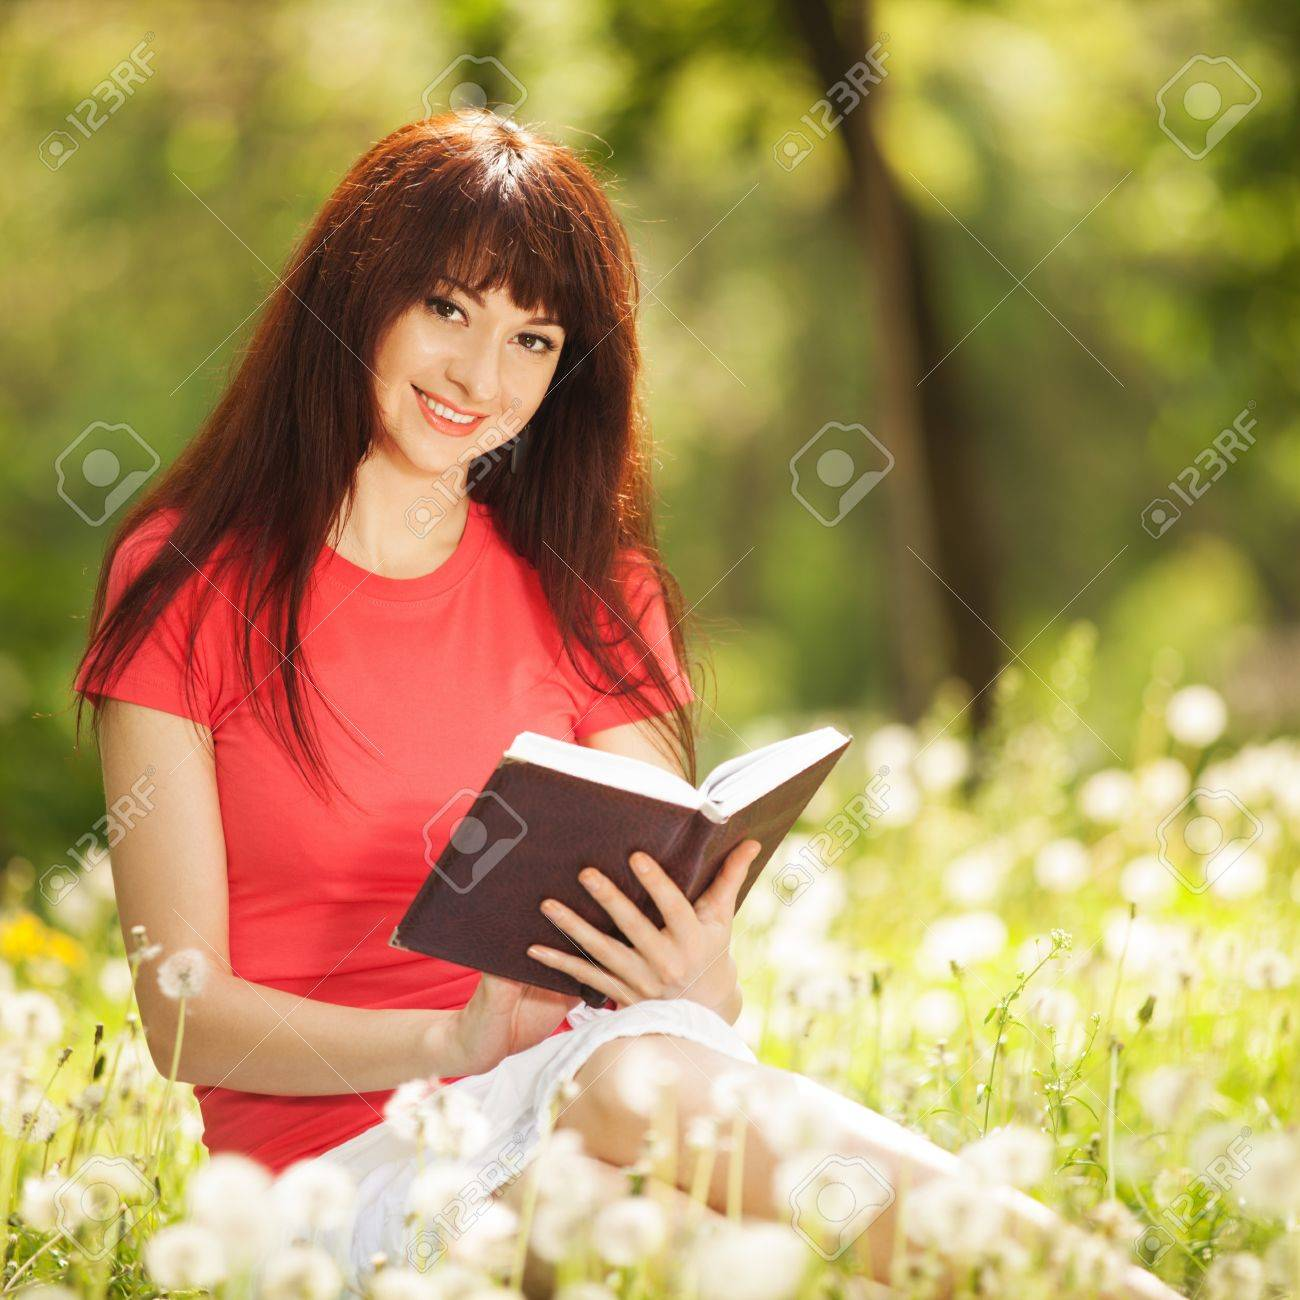 young woman reading a book in the park with flowers stock photo